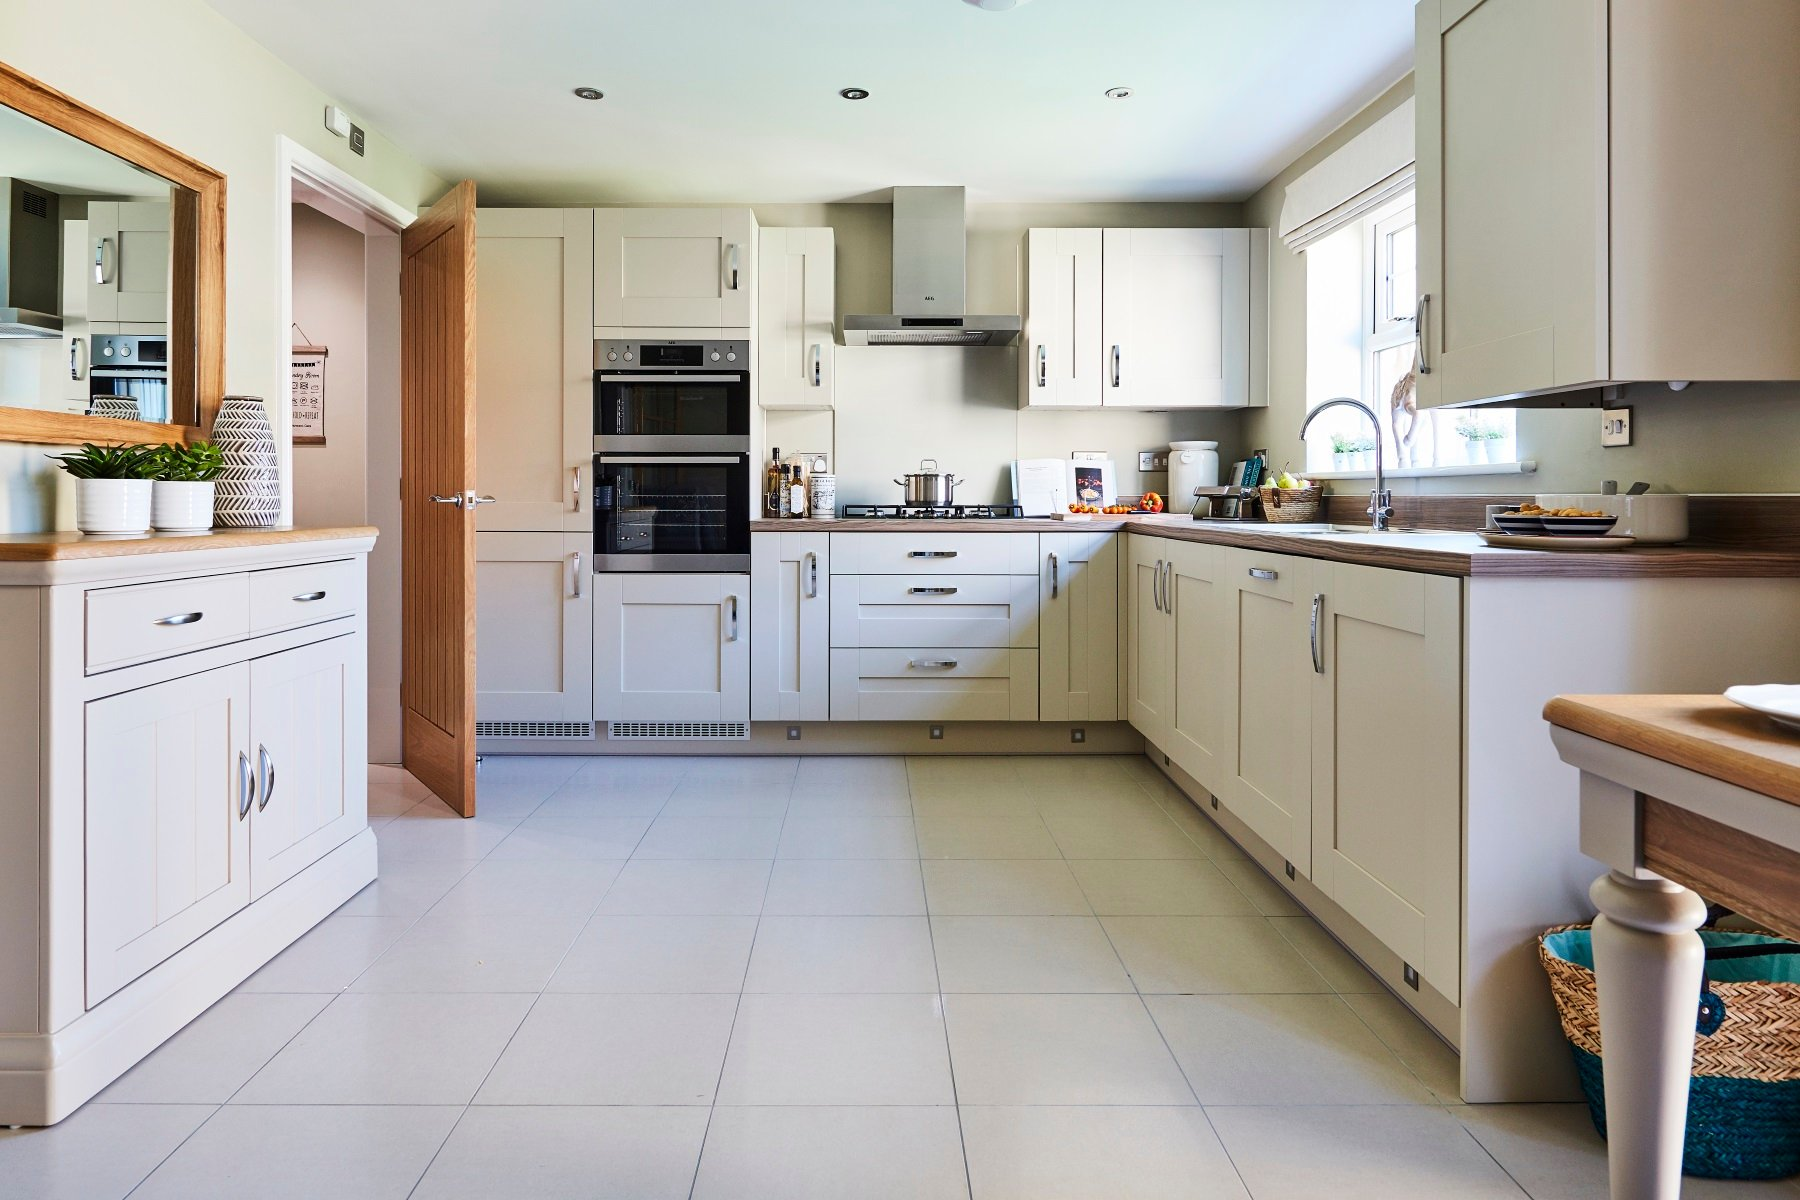 TW Exeter - Plumb Park - Knowle example kitchen